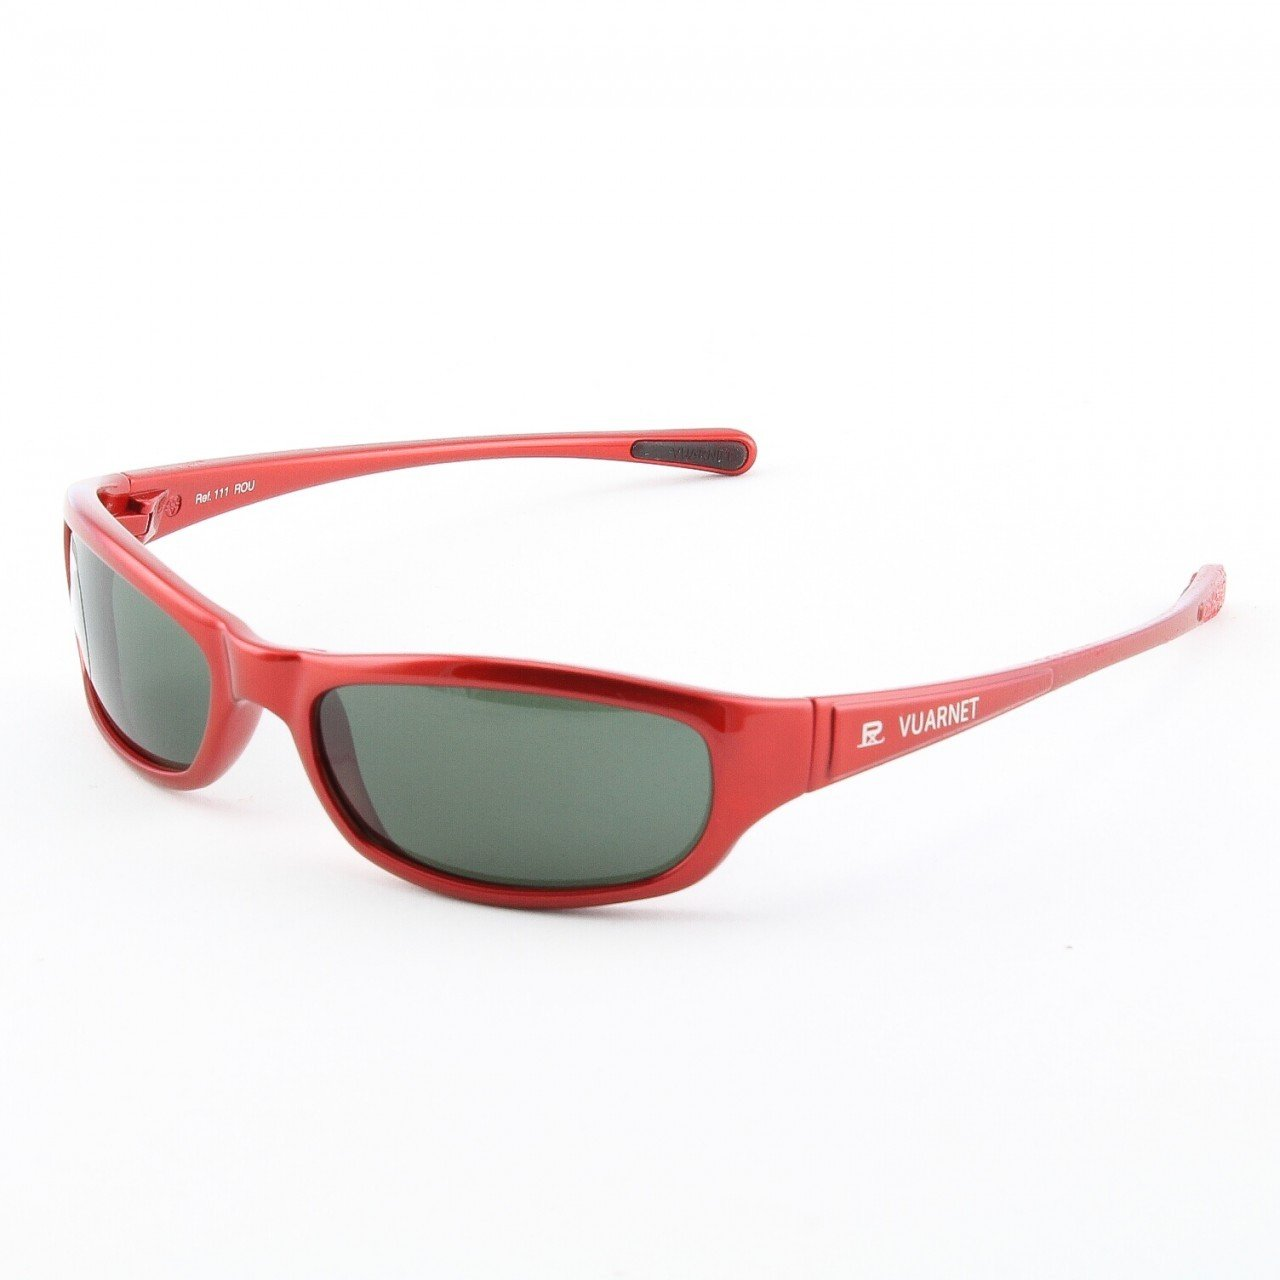 Vuarnet 3111ROU Sunglasses Col. Red with Grey PX3000 Lenses